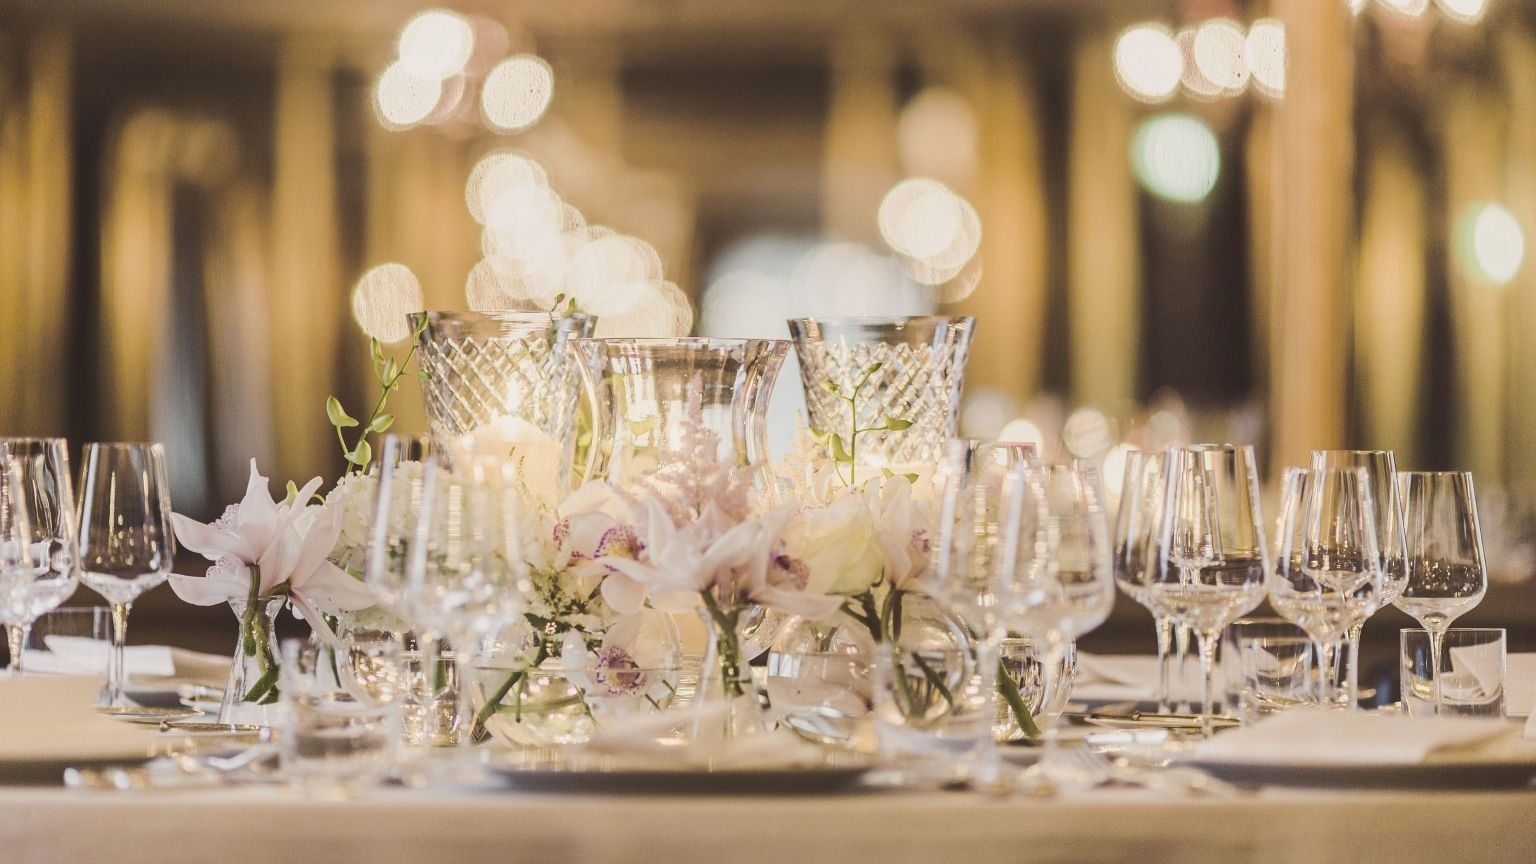 weddings at hotel cafe royal regent street london